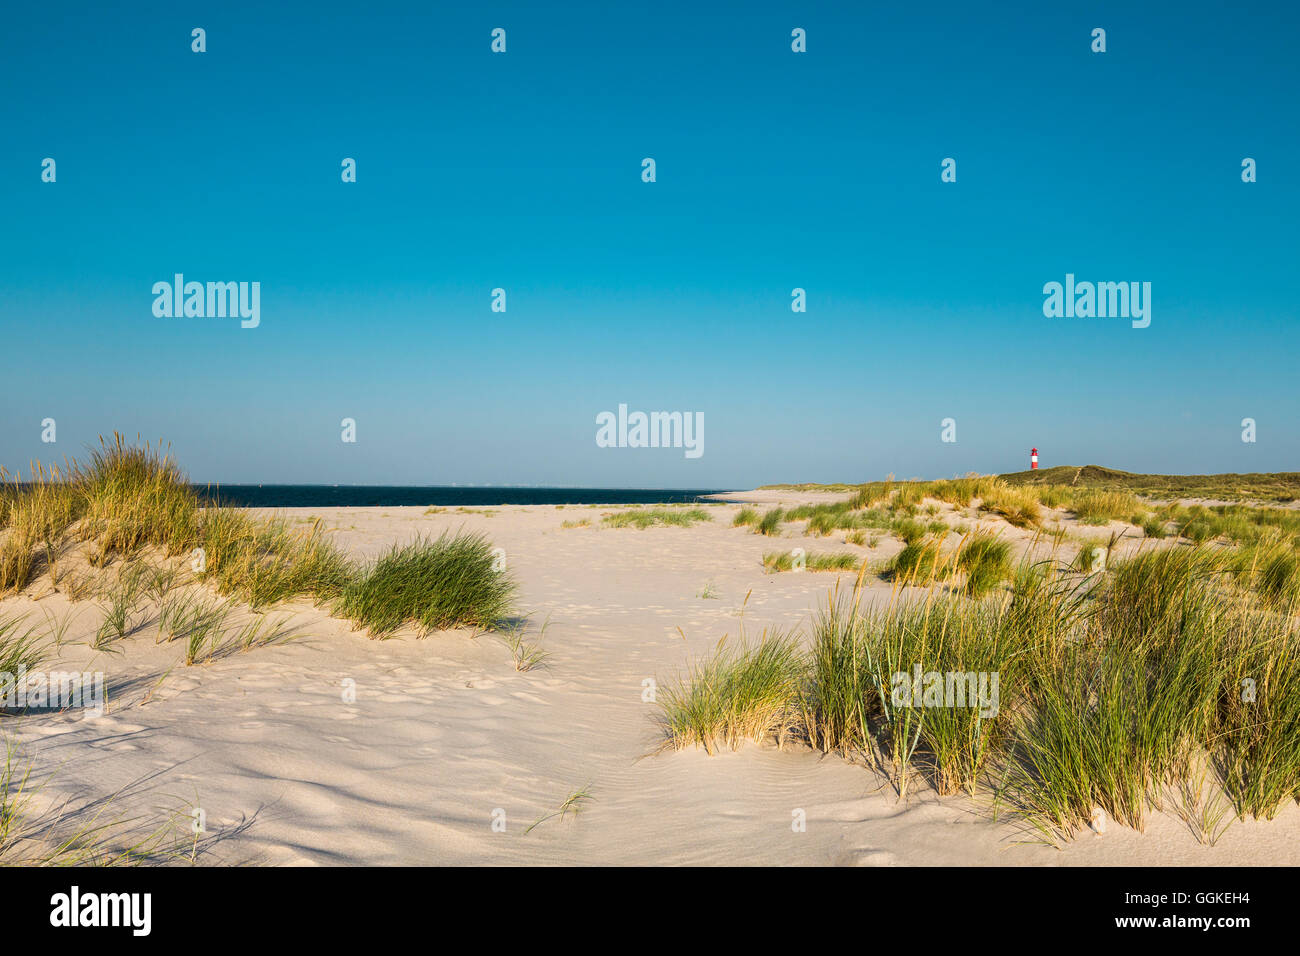 Beach and List east lighthouse, Ellenbogen, Sylt Island, North Frisian Islands, Schleswig-Holstein, Germany - Stock Image